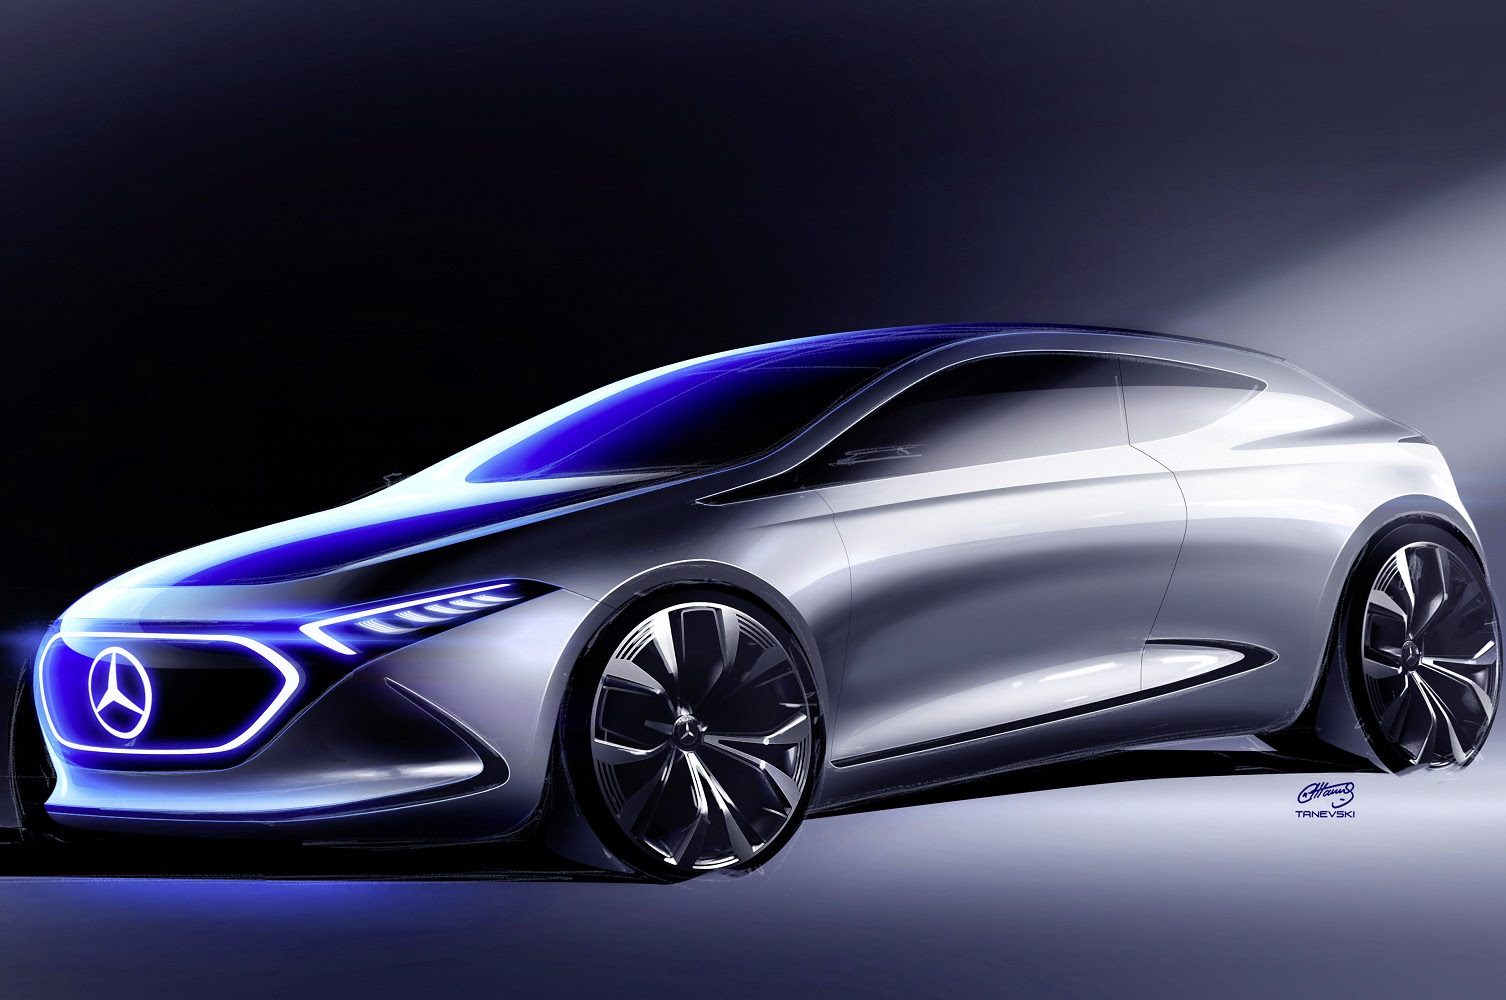 The Mercedes-Benz Concept EQA will electrify the show ...